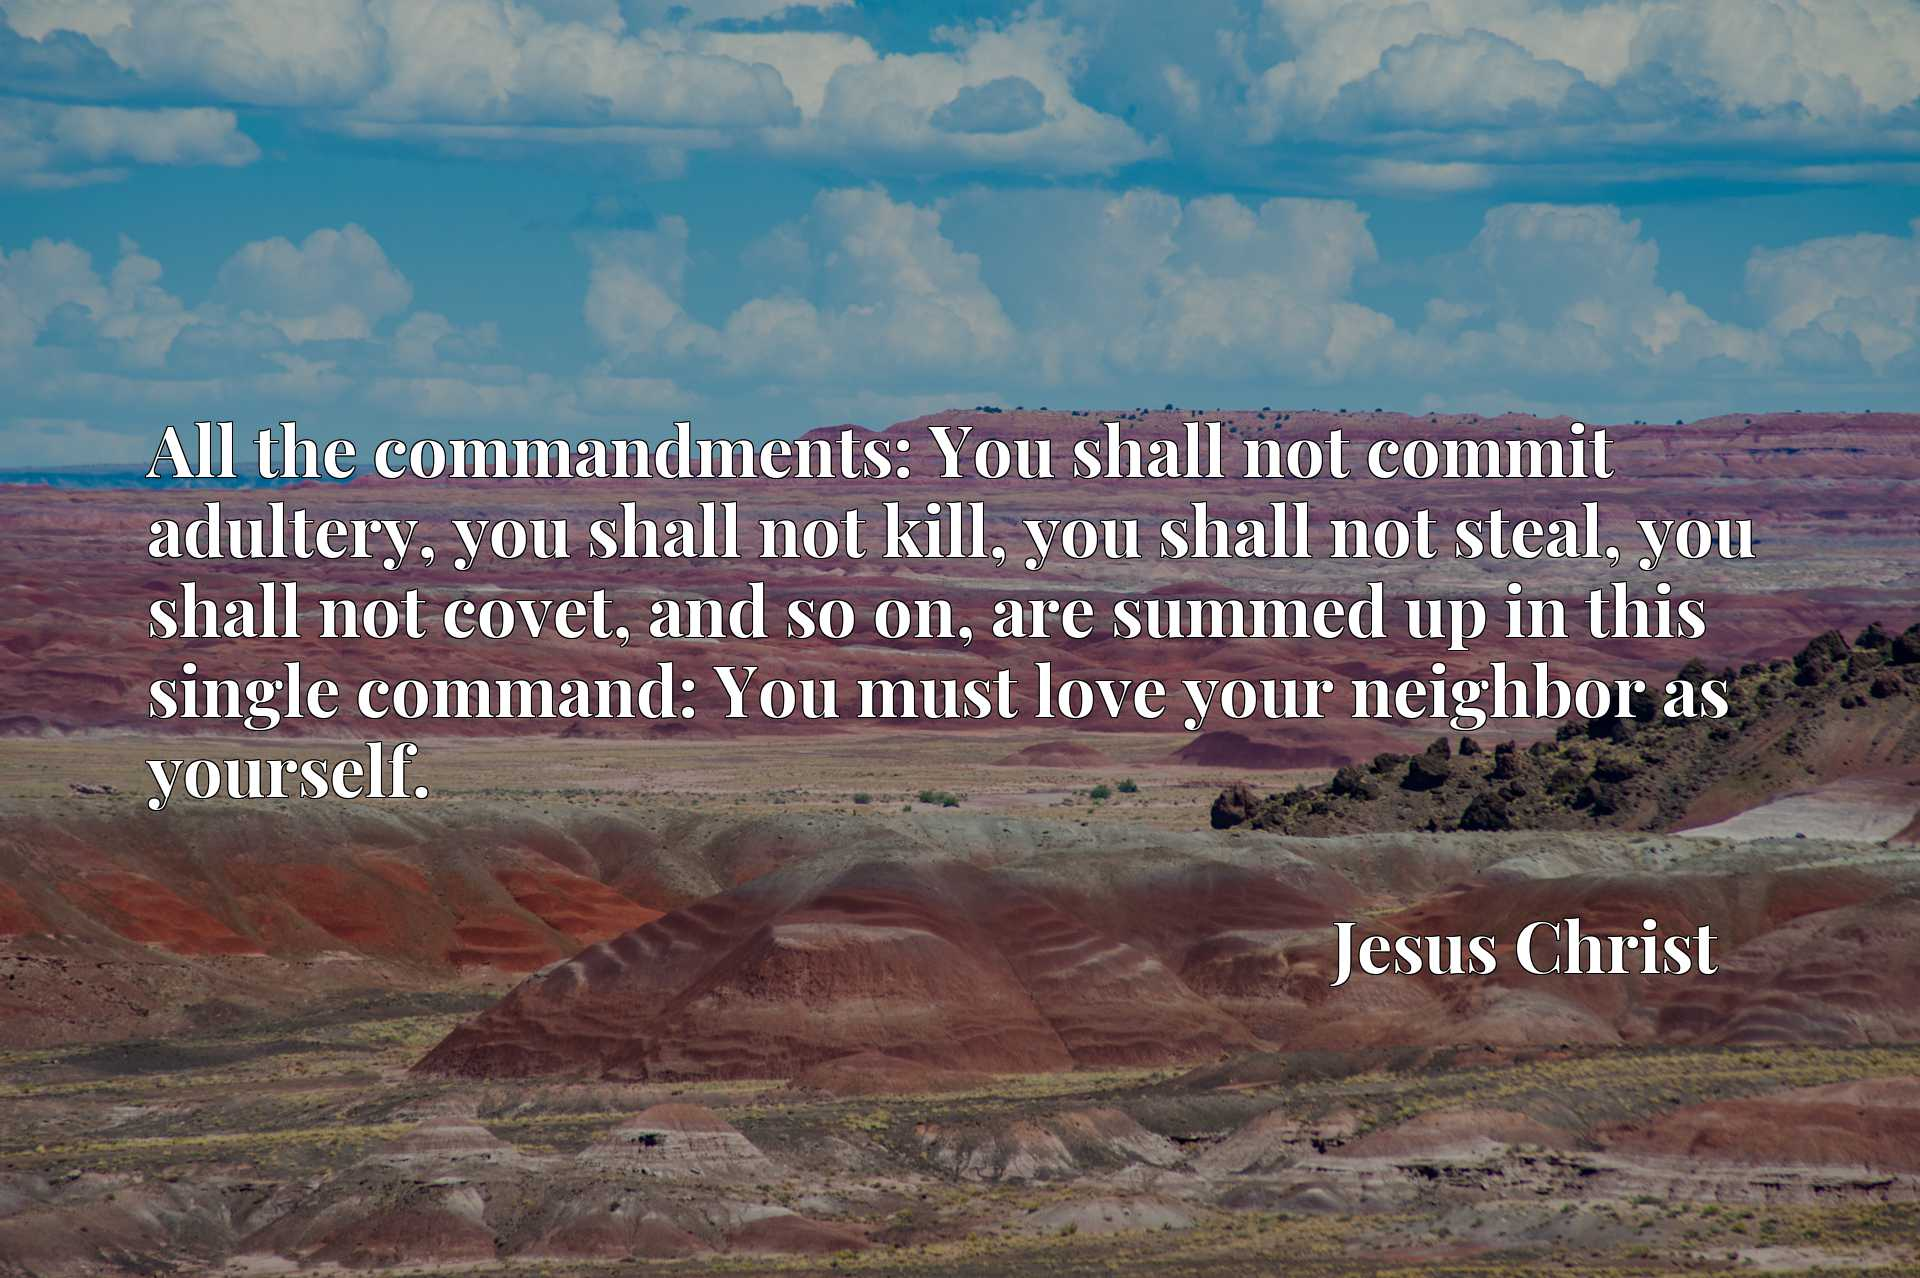 All the commandments: You shall not commit adultery, you shall not kill, you shall not steal, you shall not covet, and so on, are summed up in this single command: You must love your neighbor as yourself.